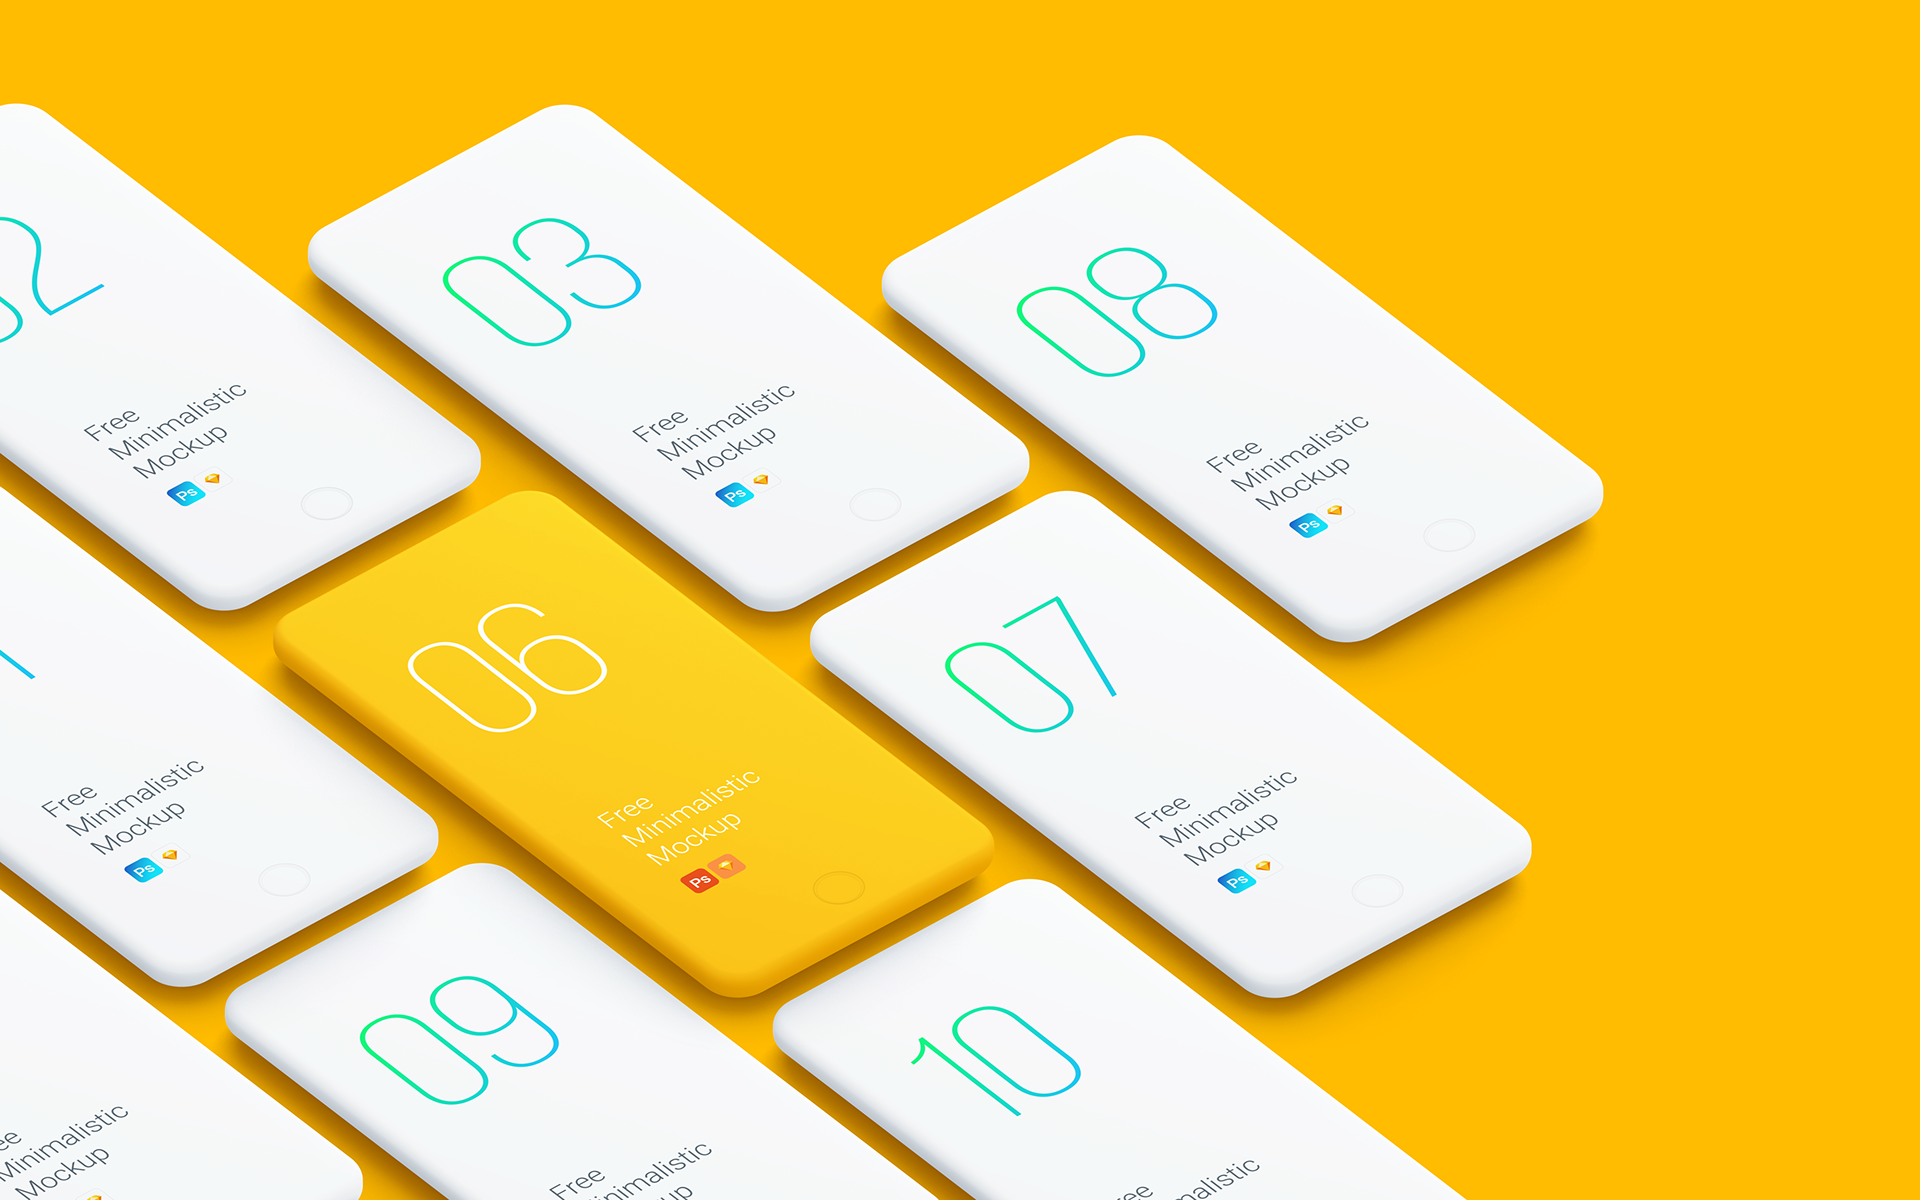 Free Phone Mockup for your next Presentation